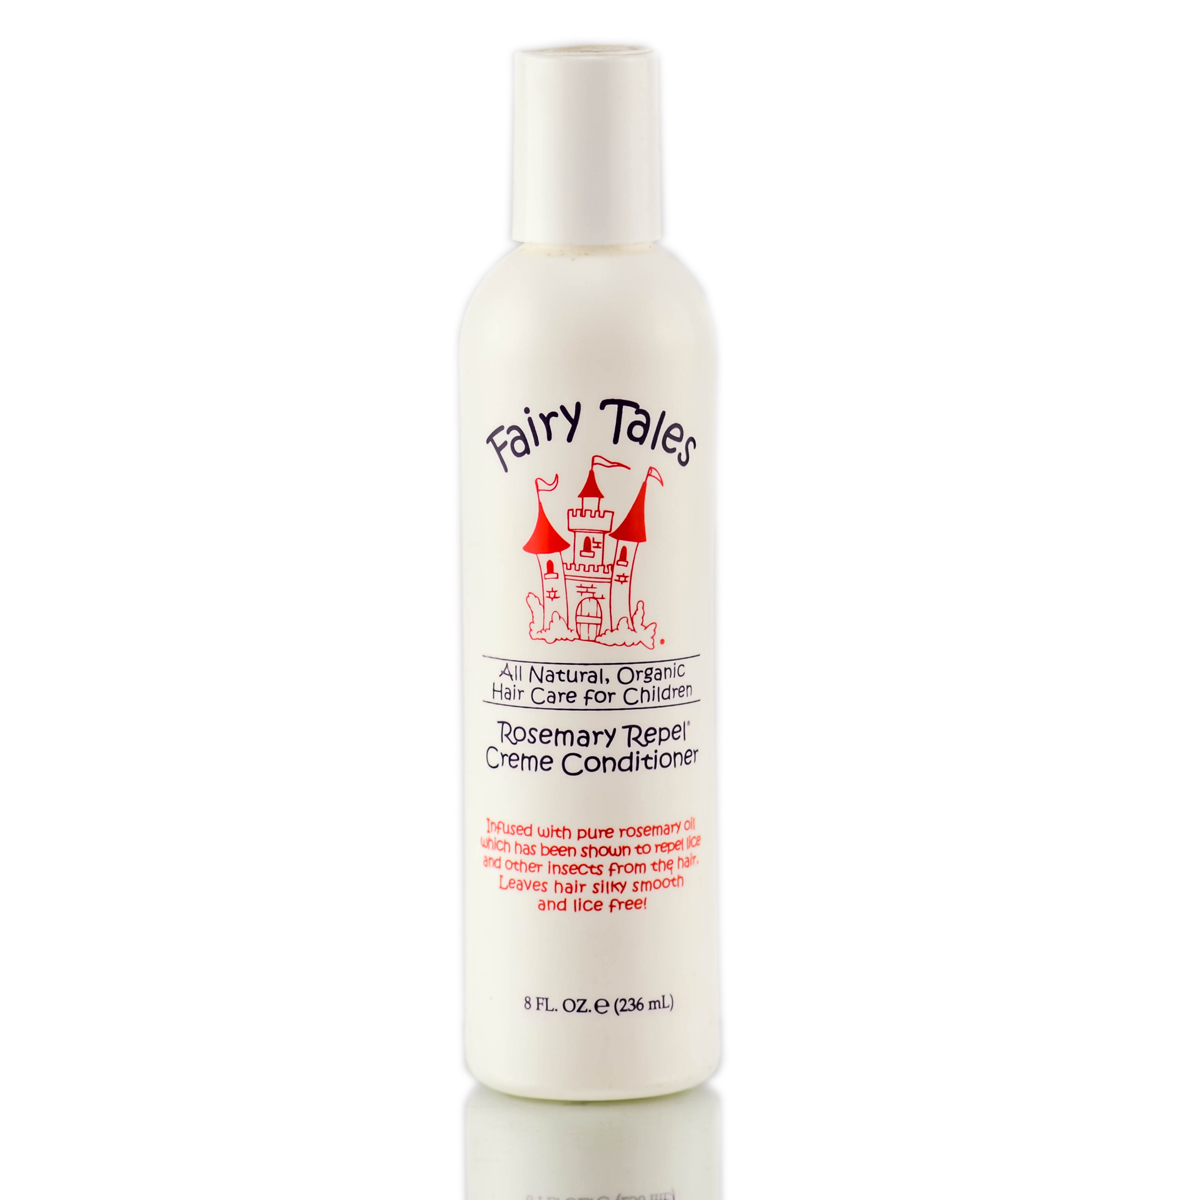 Fairy Tales Rosemary Repel Creme Conditioner 812729003510